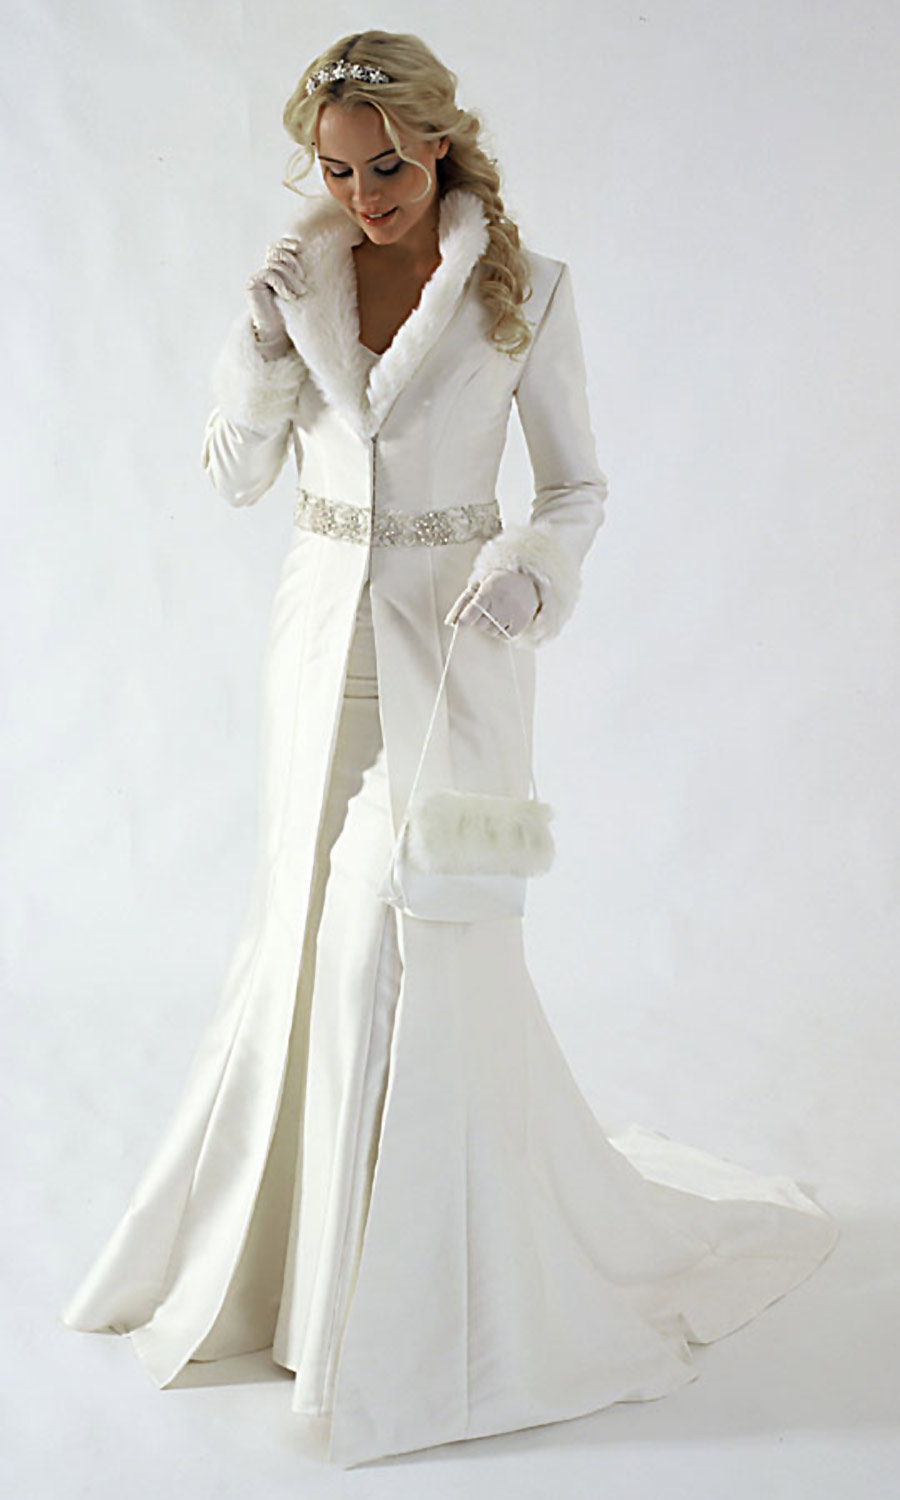 Winter Wedding Dress Trends For 2010